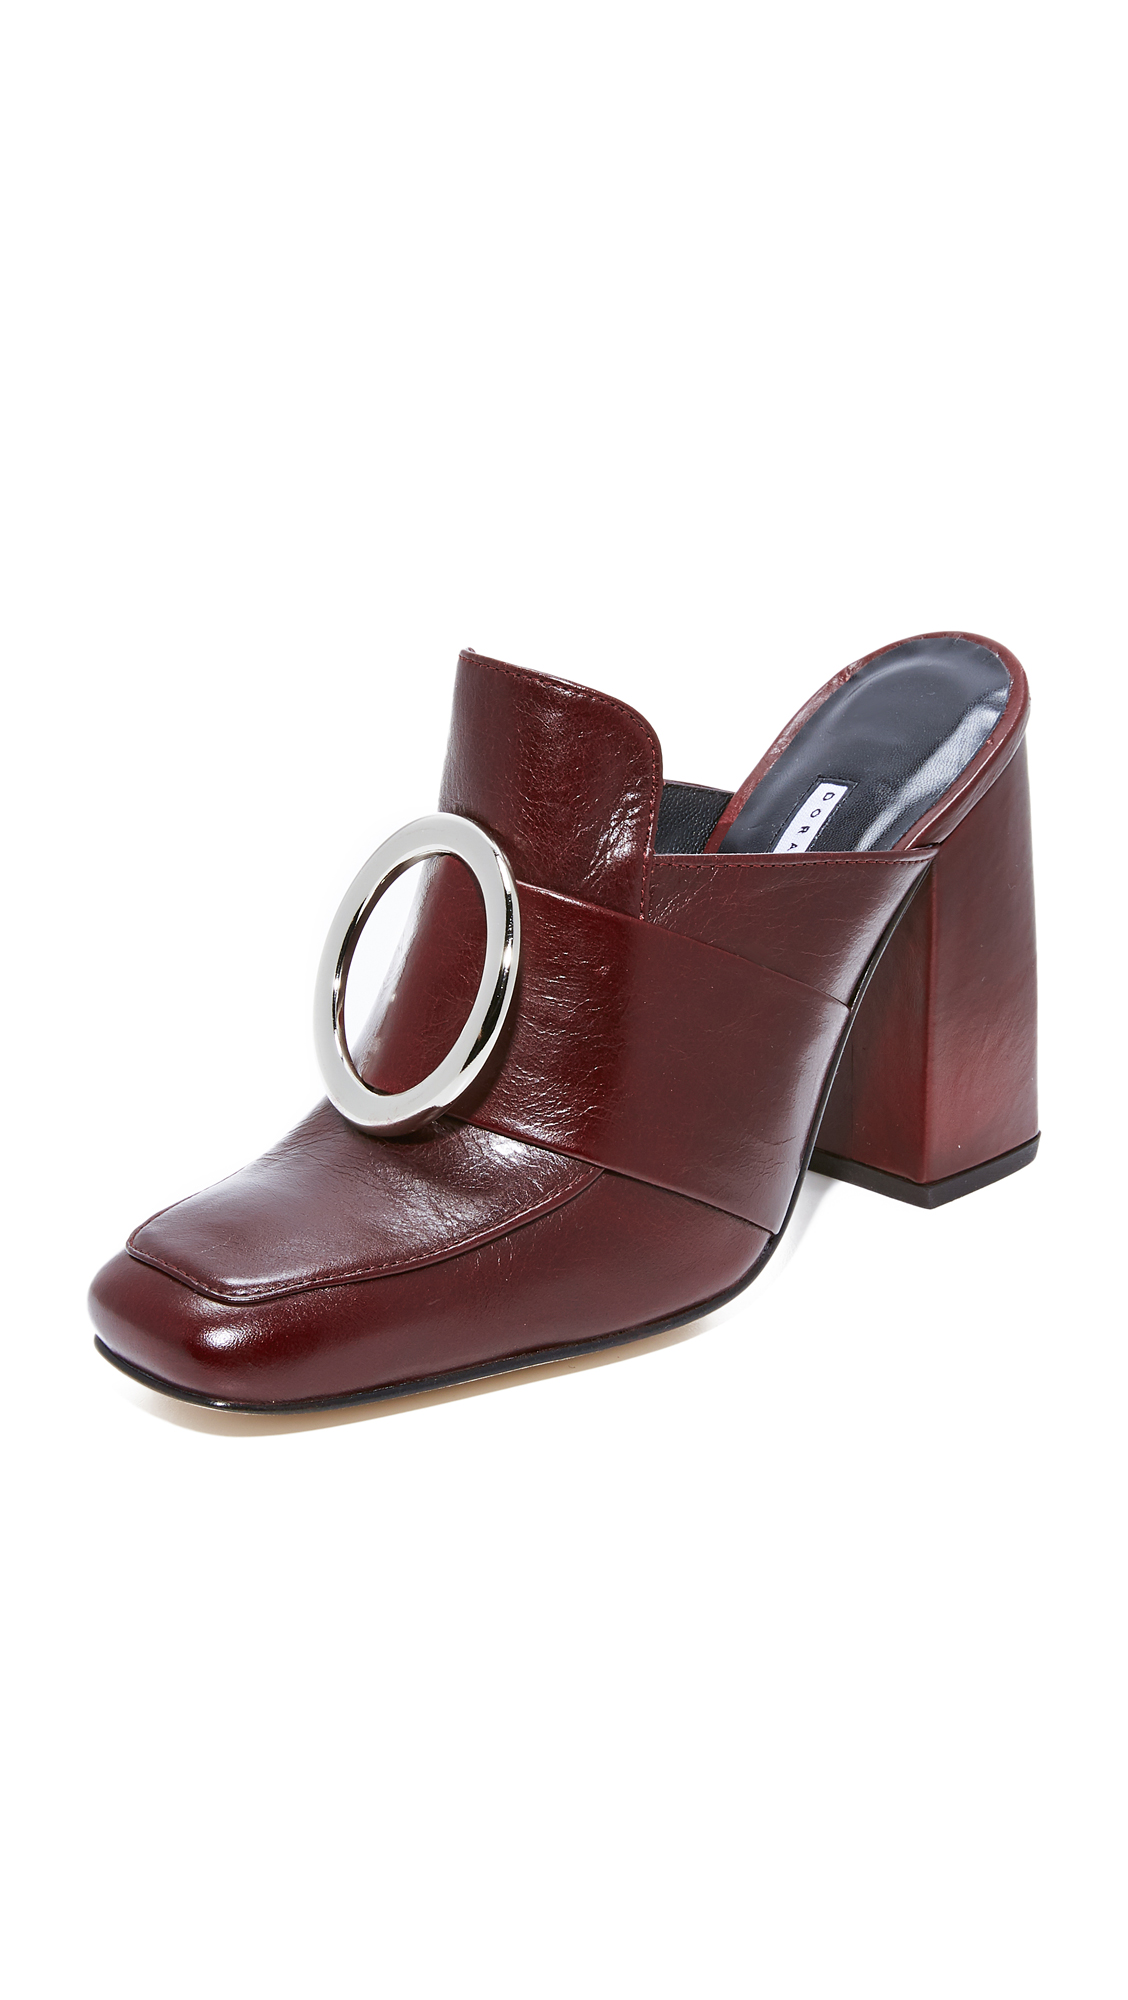 Dorateymur Munise Buckle Mules - Maroon